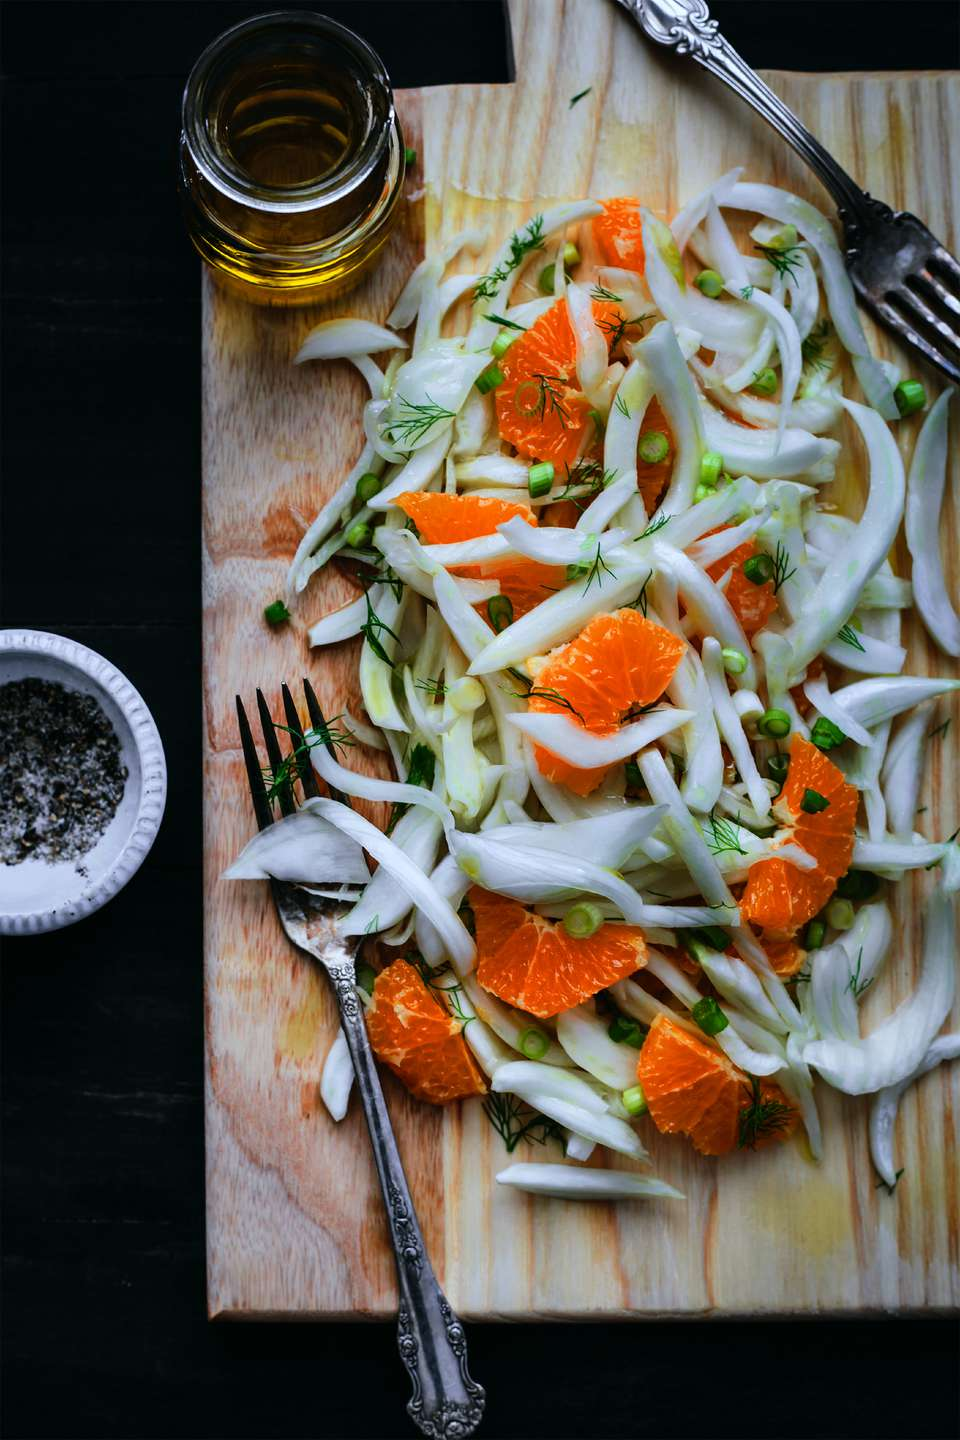 Sliced fennel, scallions and blood orange